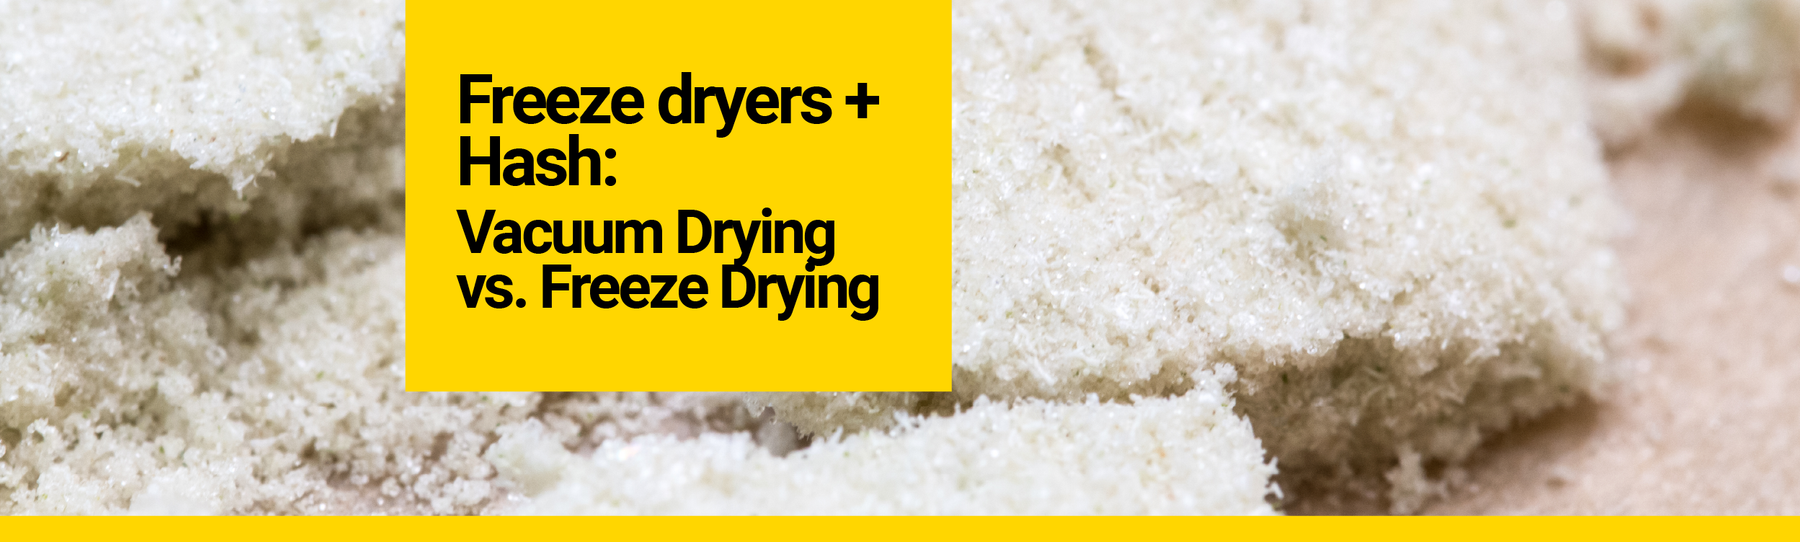 Freeze Dryers and Bubble Hash: Vacuum Drying vs. Freeze Drying